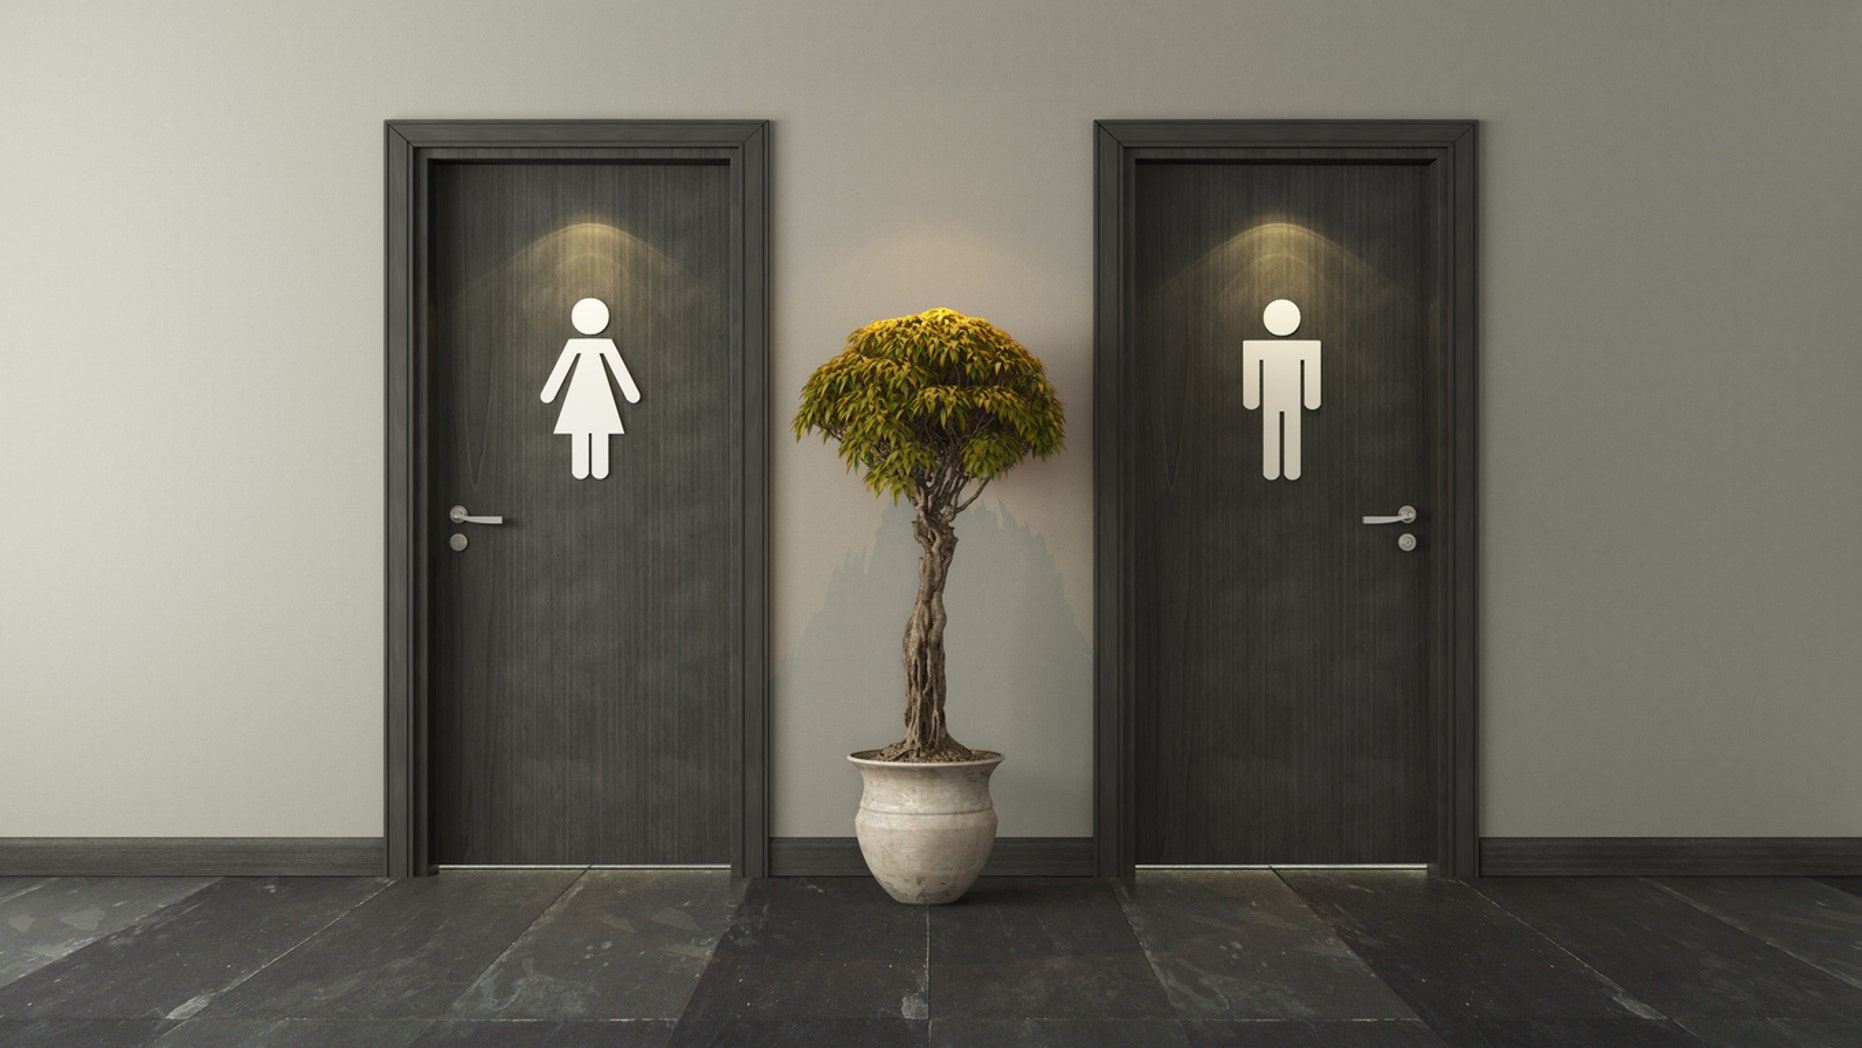 Colorado Restaurant Removes Bathroom Sign After Backlash